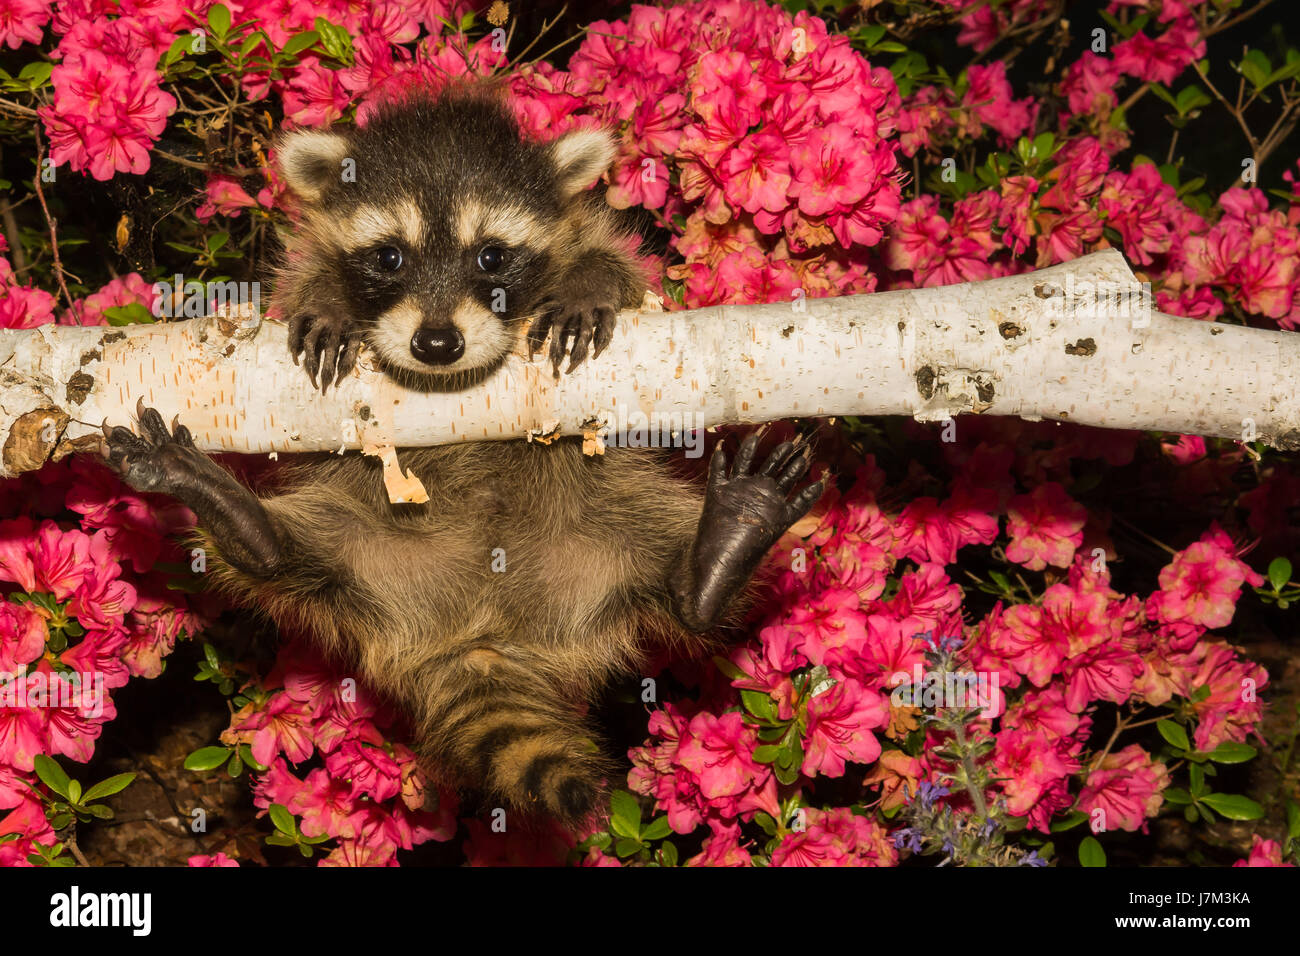 A baby Raccoon learning to climb in the garden Stock Photo ...